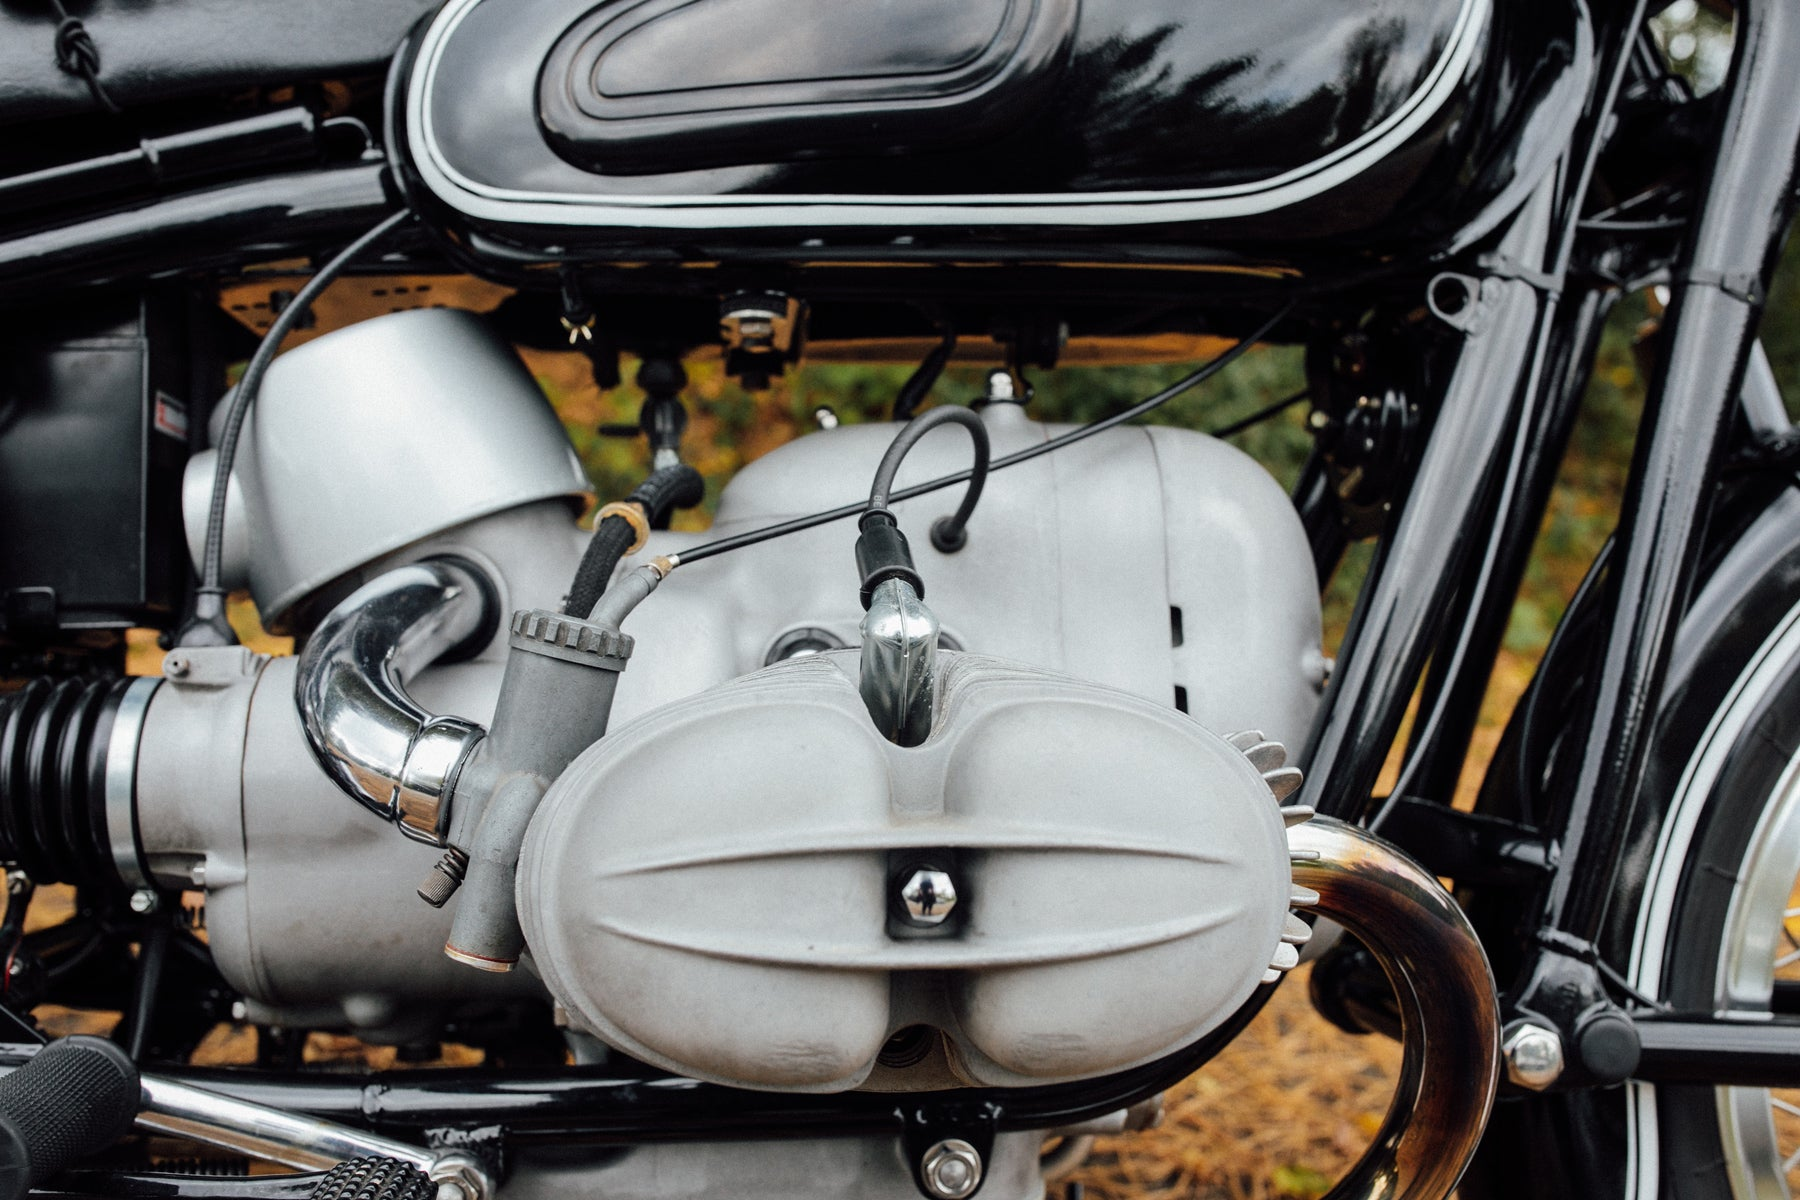 BMW R69S Classic Vintage Motorcycle Pittsburgh